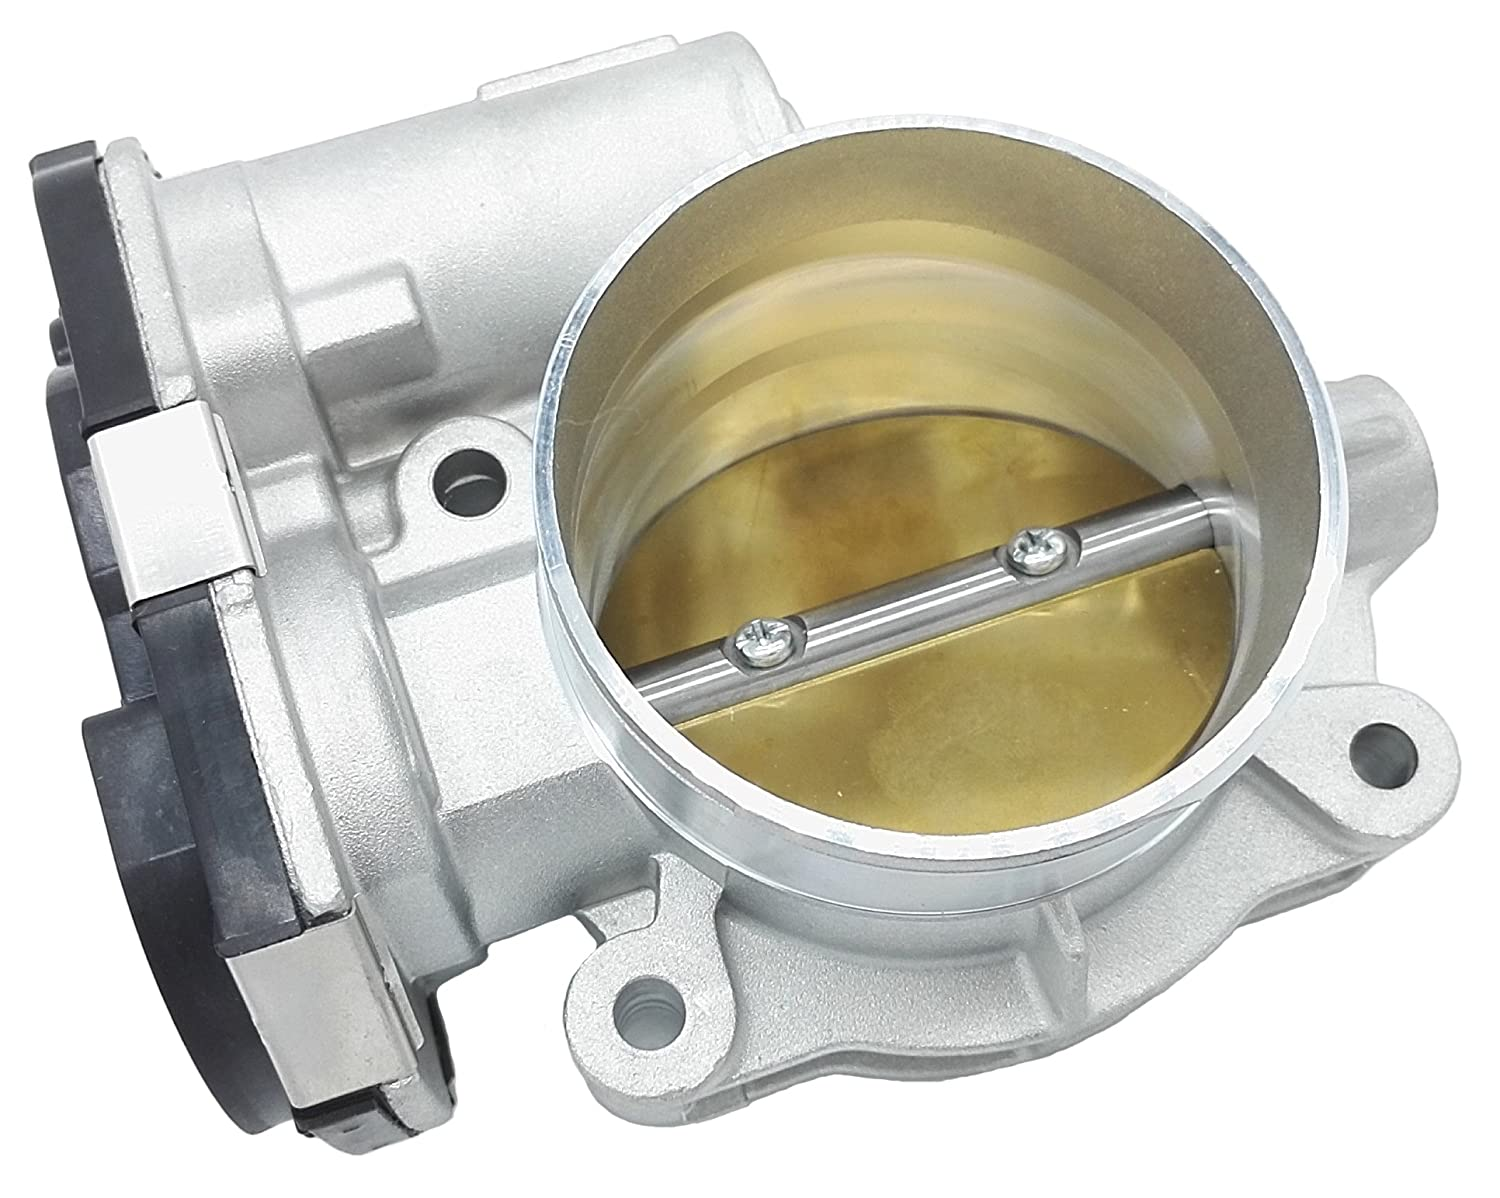 OKAY MOTOR Throttle Body for 2007-2011 GM Camaro CTS STS SRX Equinox 2.8L 3.0L 3.6L Okay Motor Prodcuts Inc. 12616994